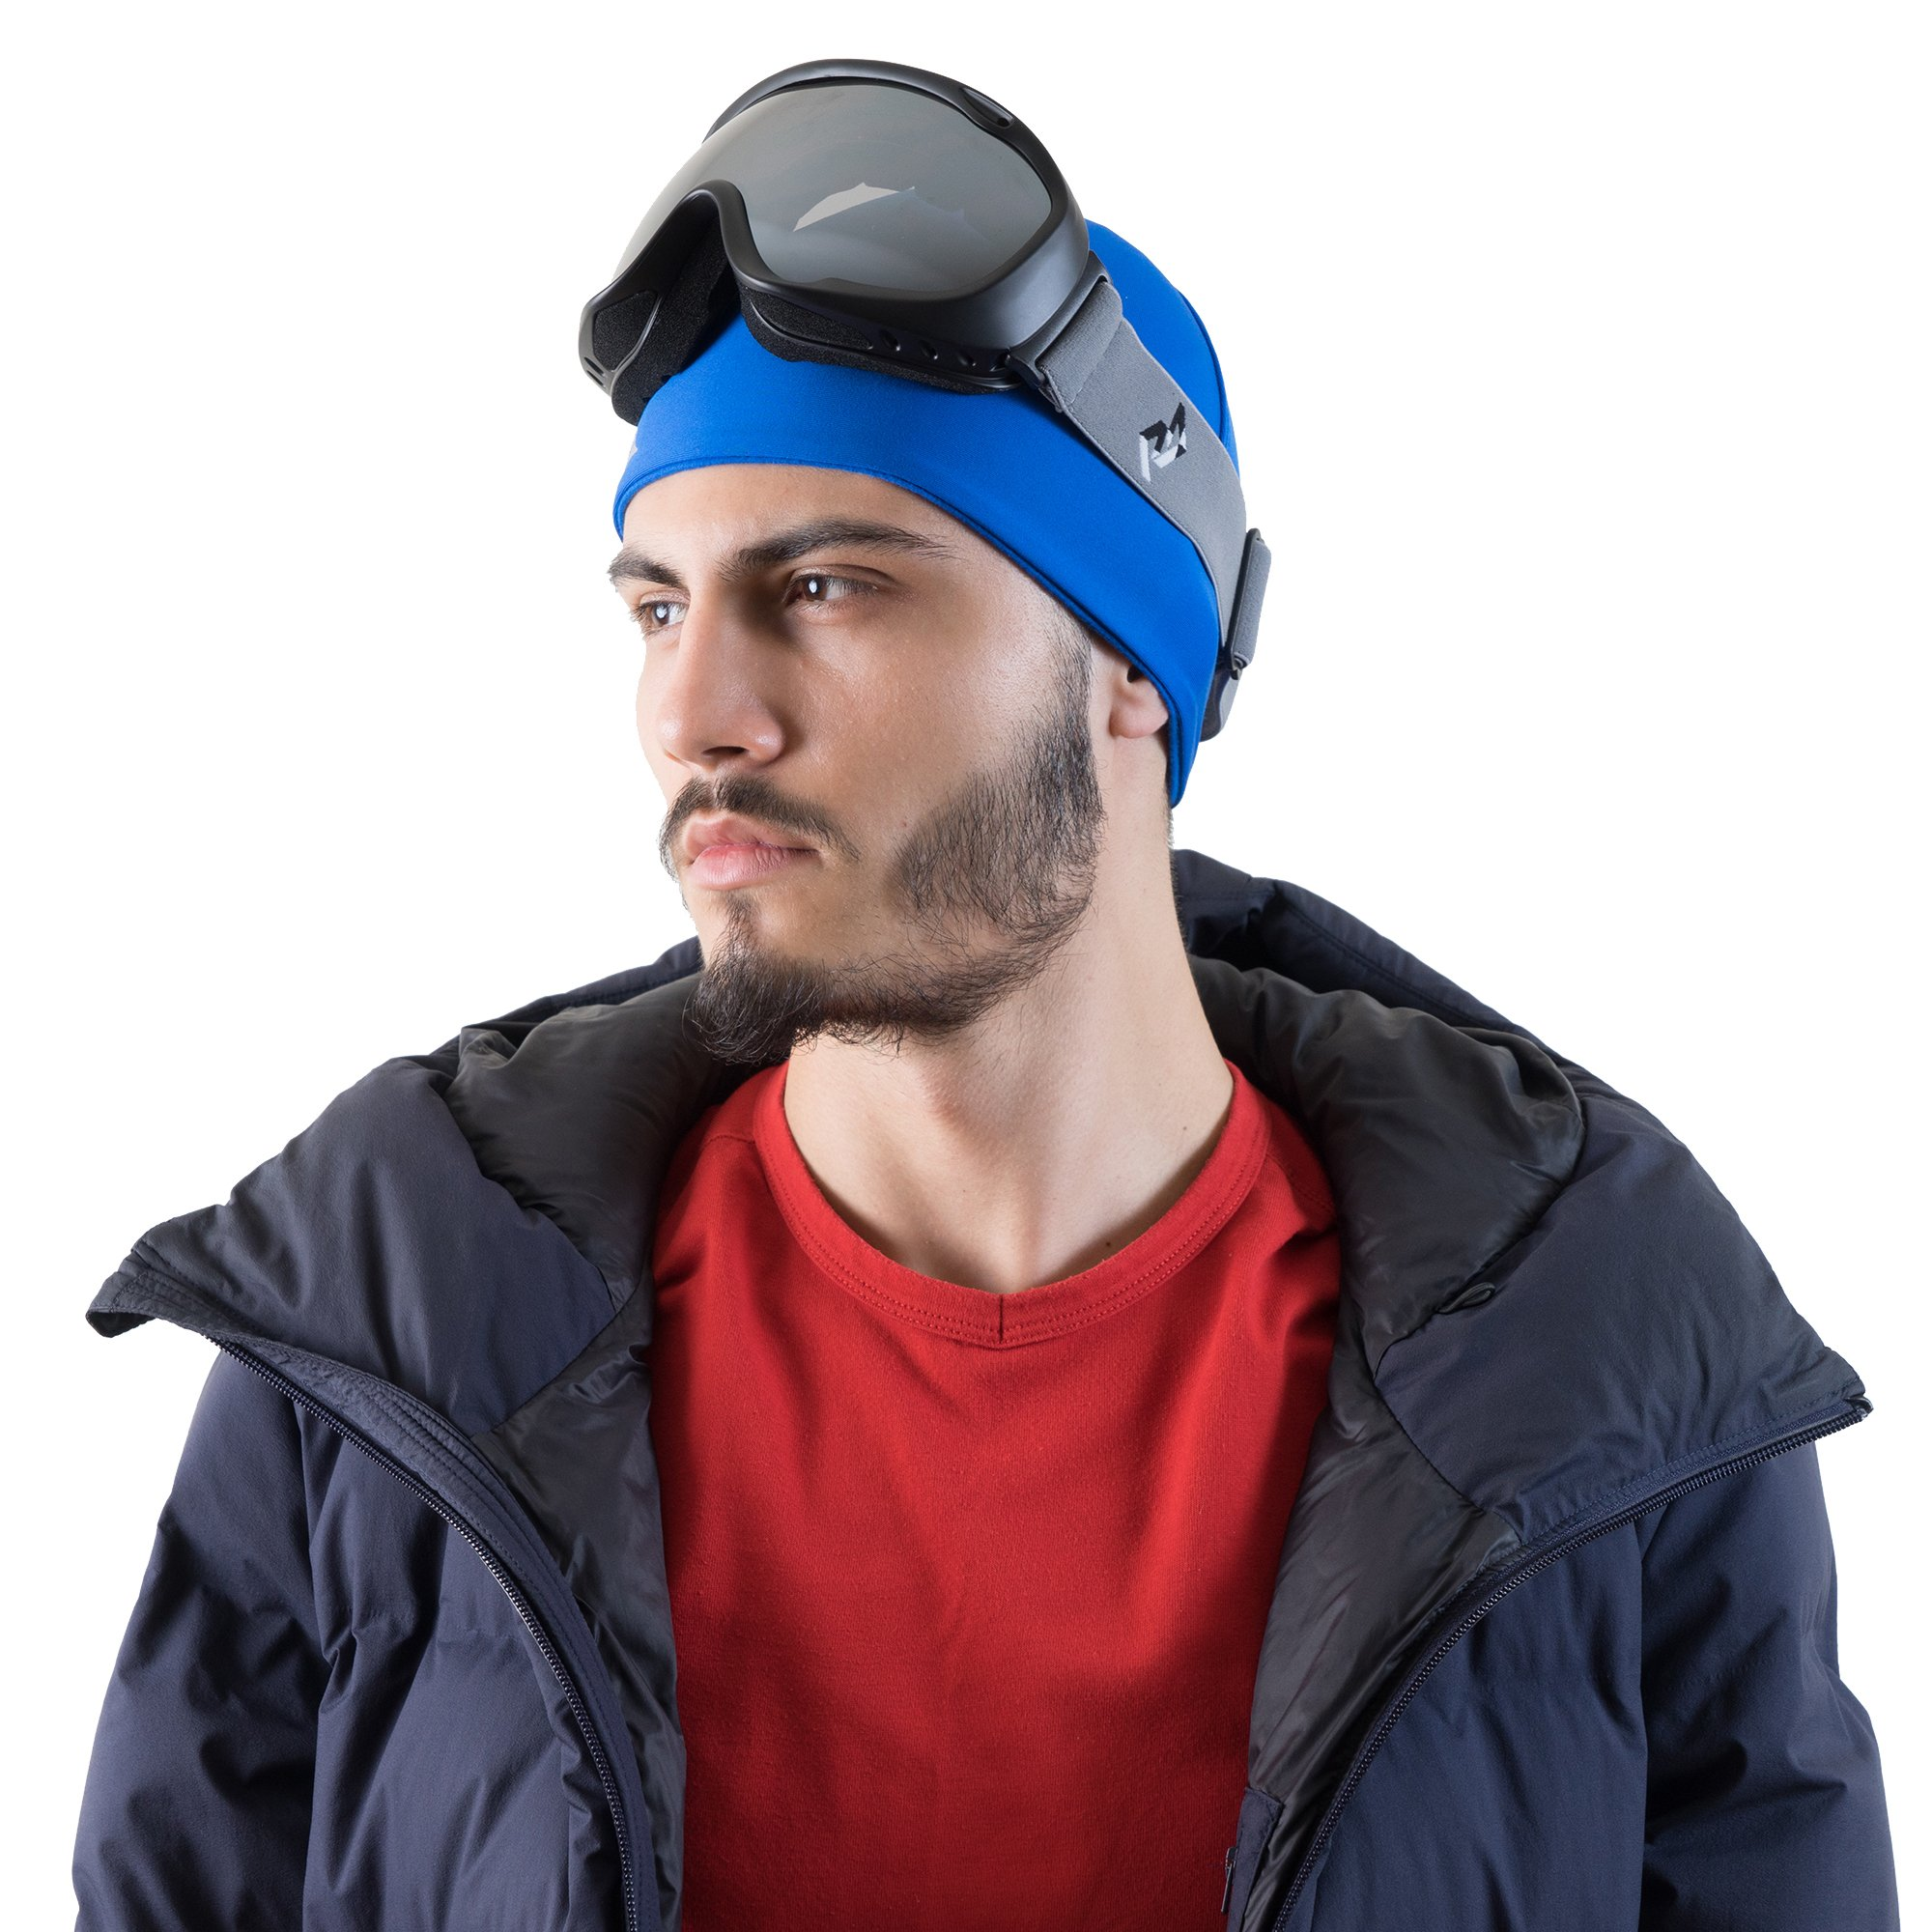 a9dd9e37f9f French Fitness Revolution Helmet Liner Skull Cap Beanie. Ultimate Thermal  Retention and Performance Moisture Wicking. Fits Under Helmets